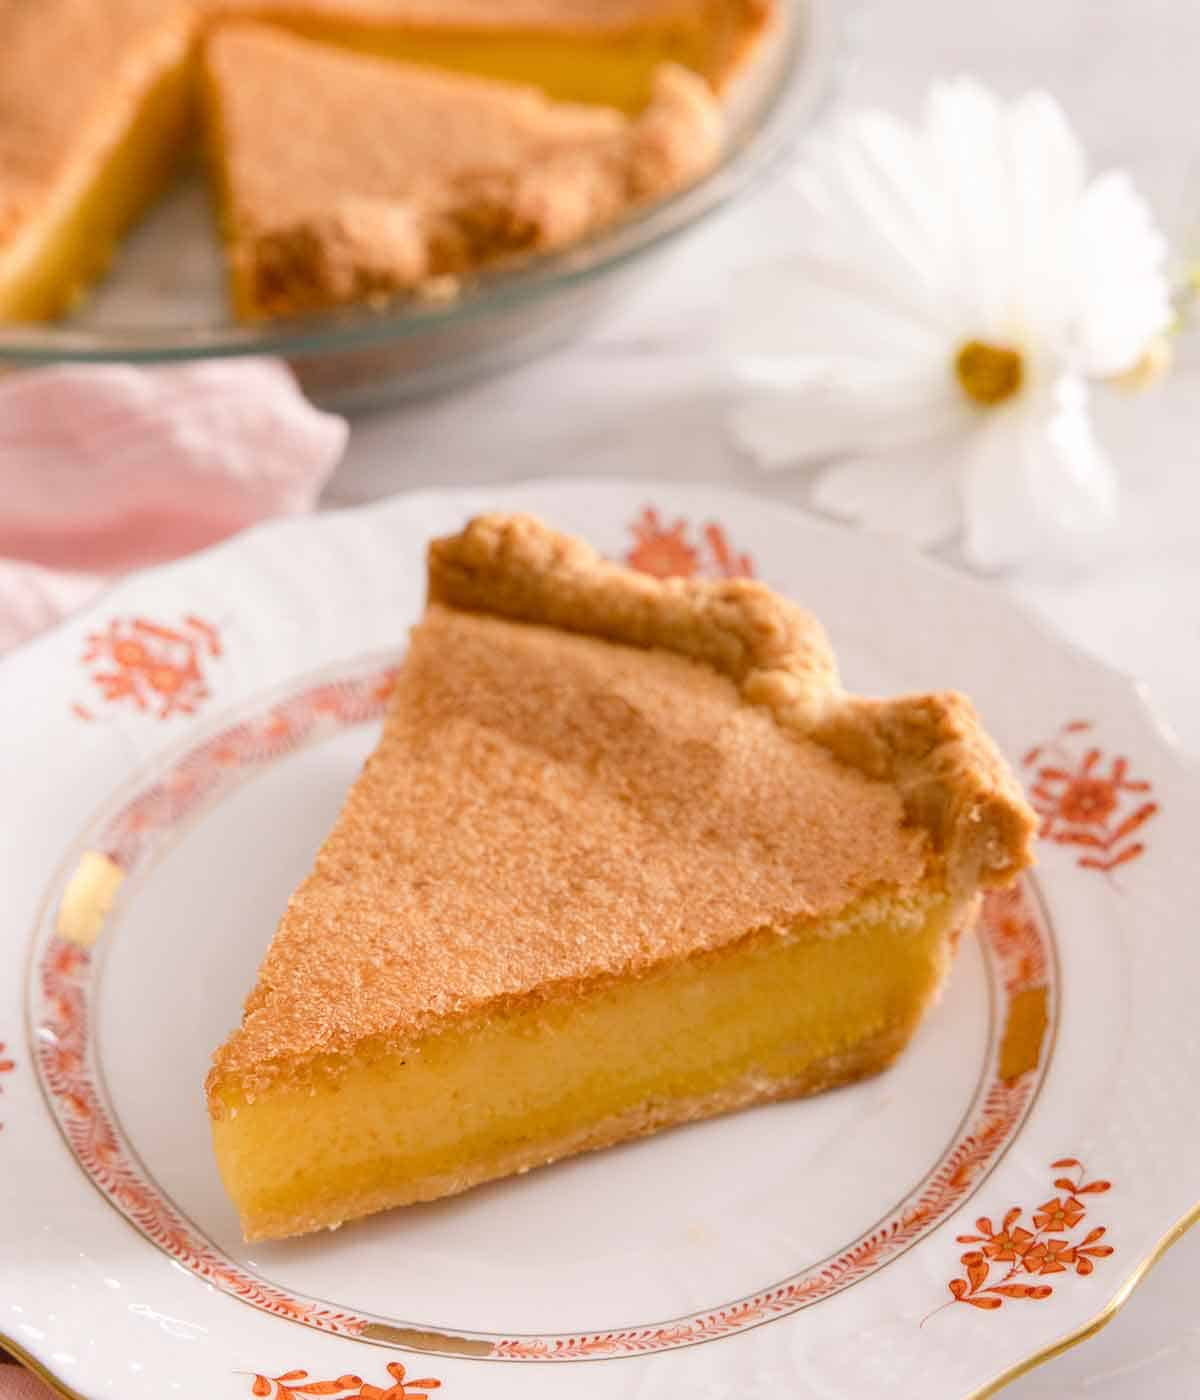 A slice of chess pie on a white plate with orange floral print.